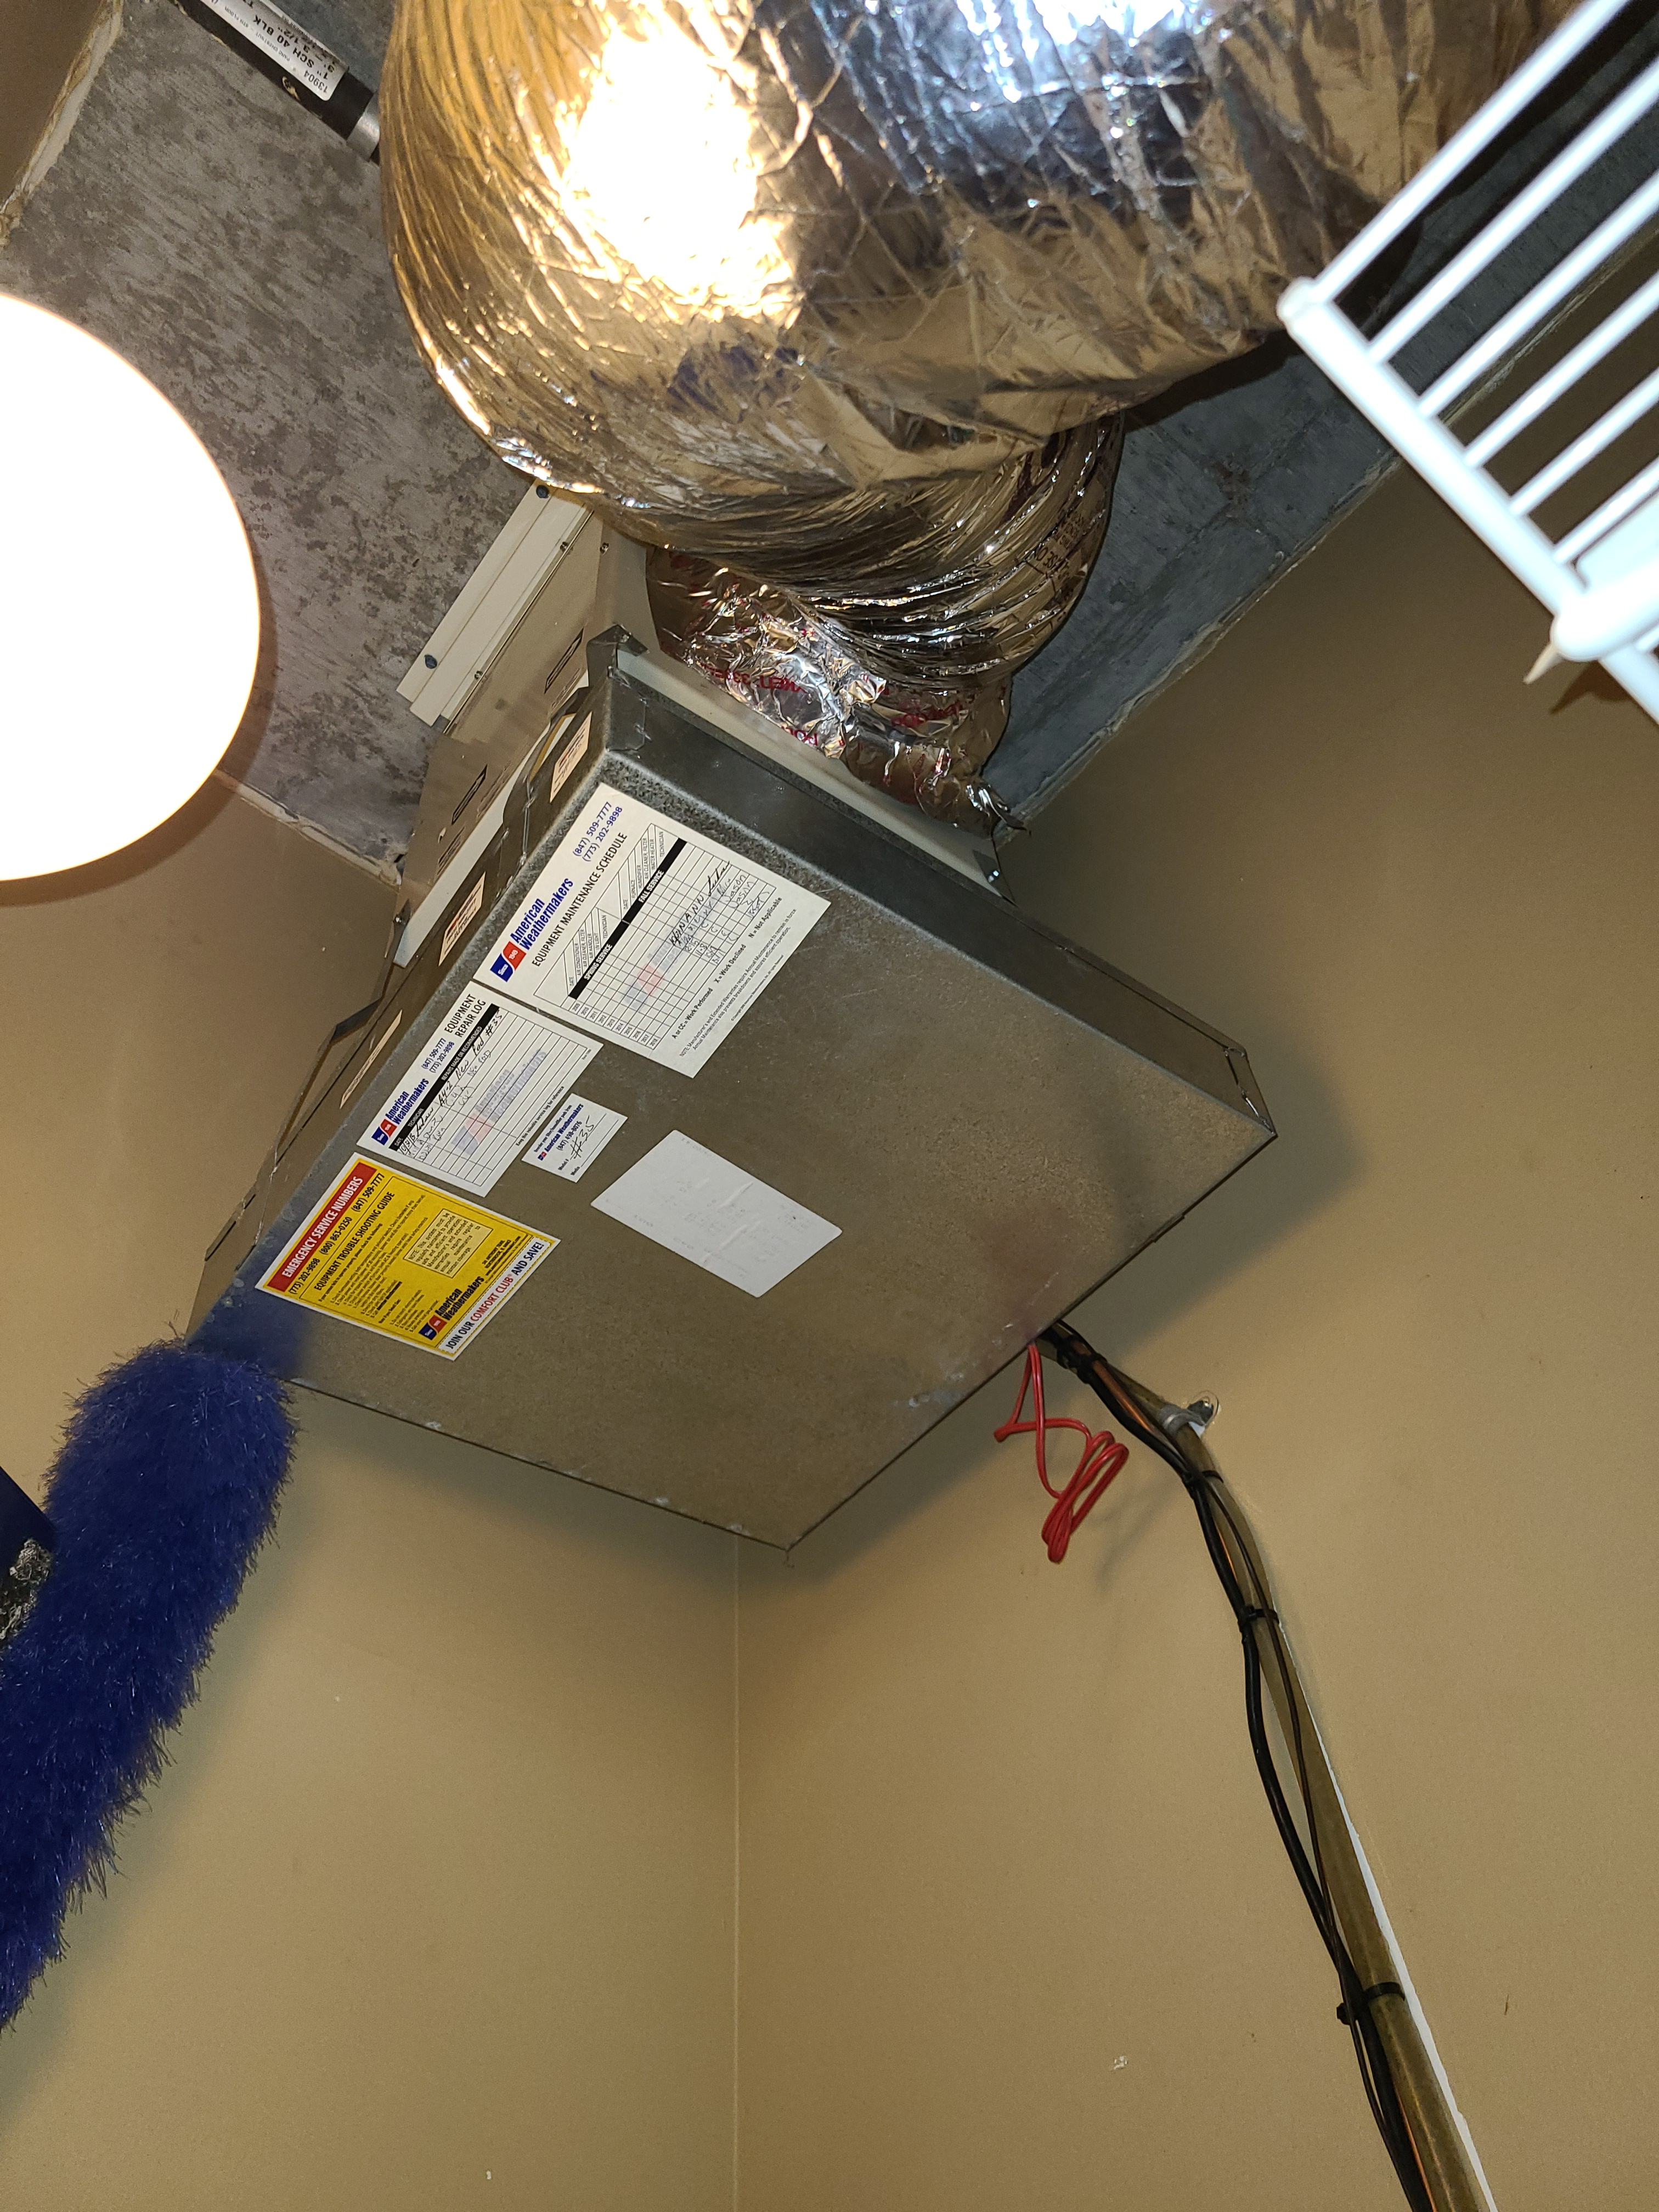 Humidifier leak repaired on Aprilaire system. Operation restored.